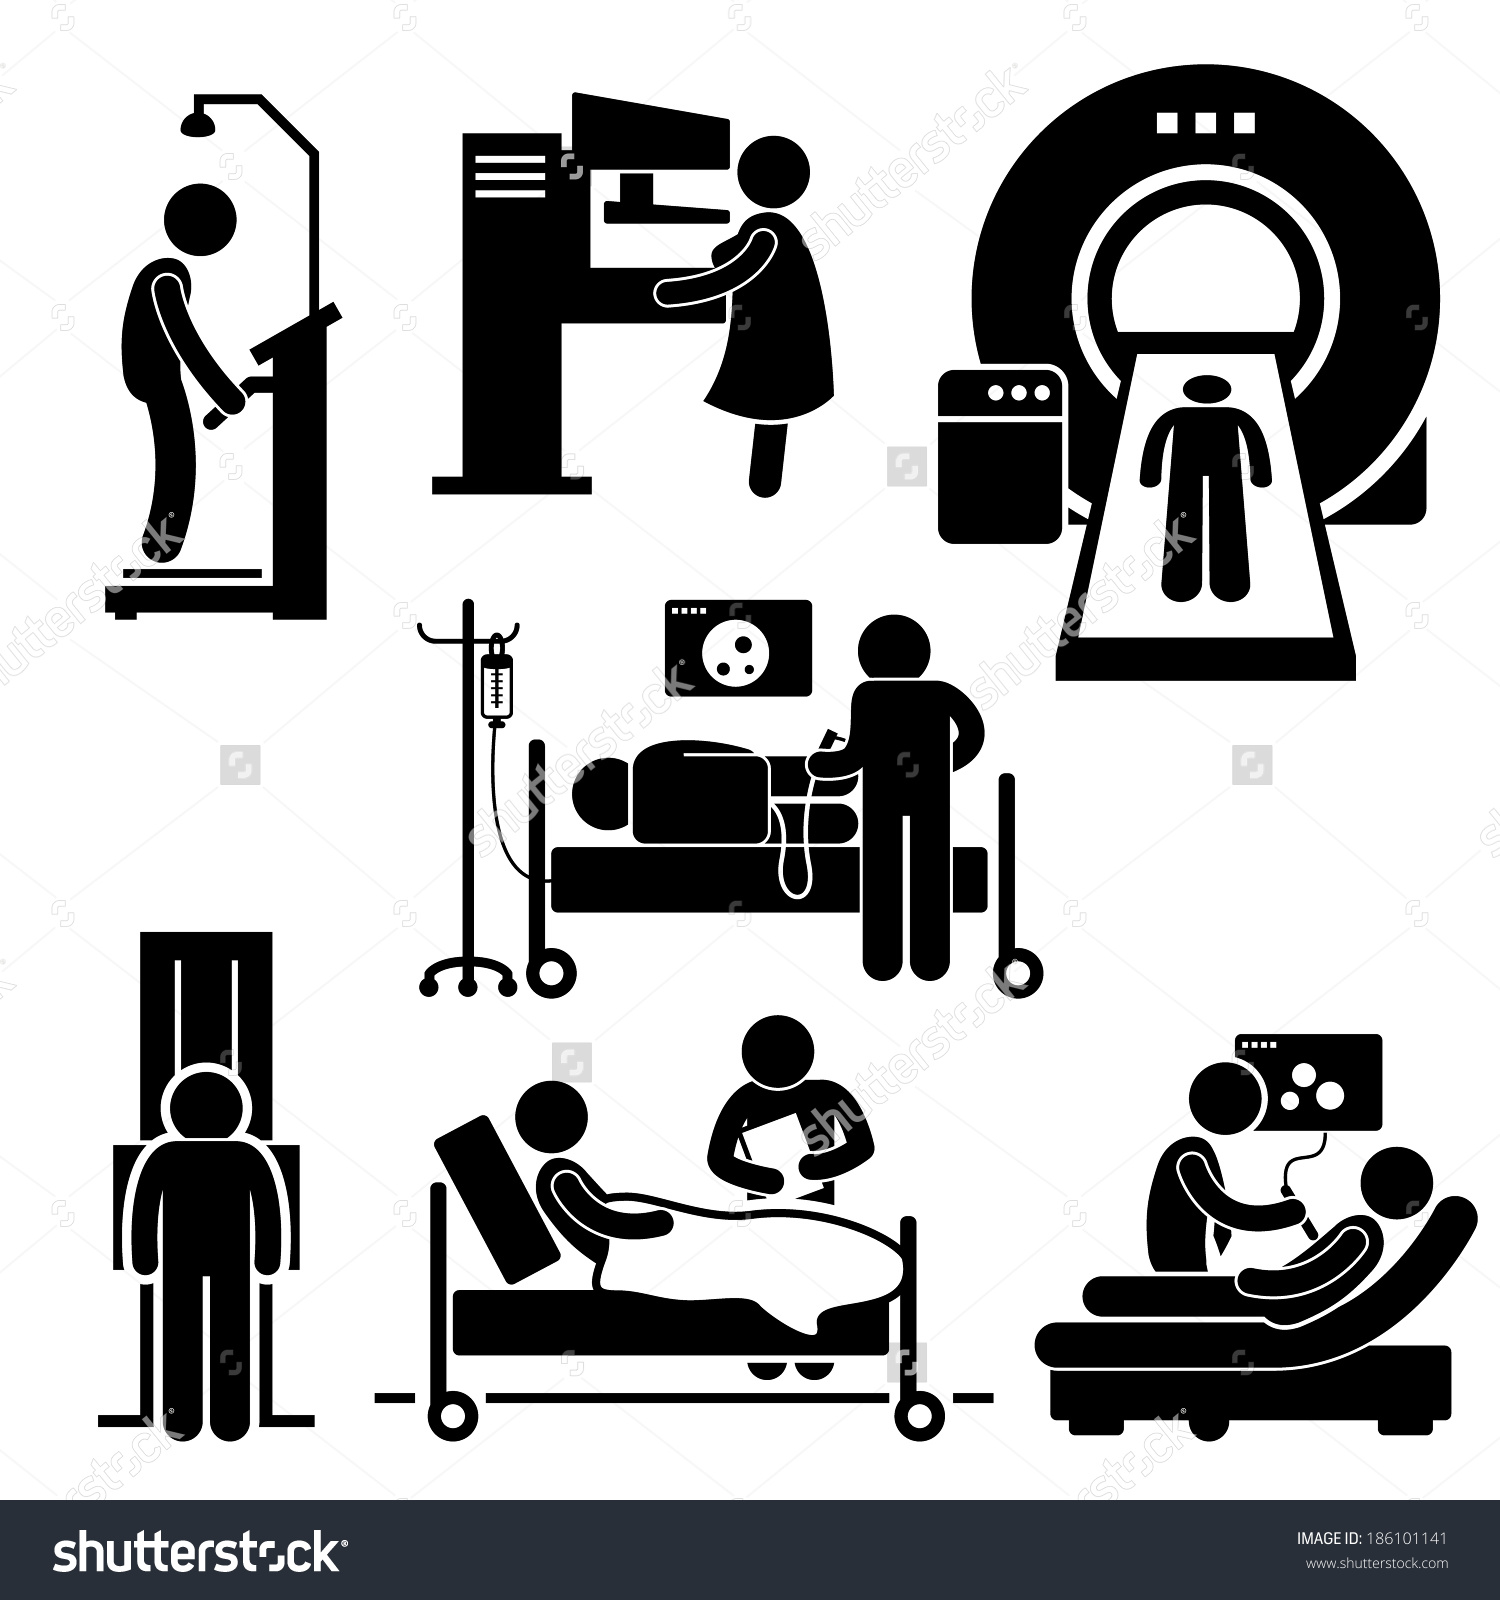 Medical Imaging Clipart.